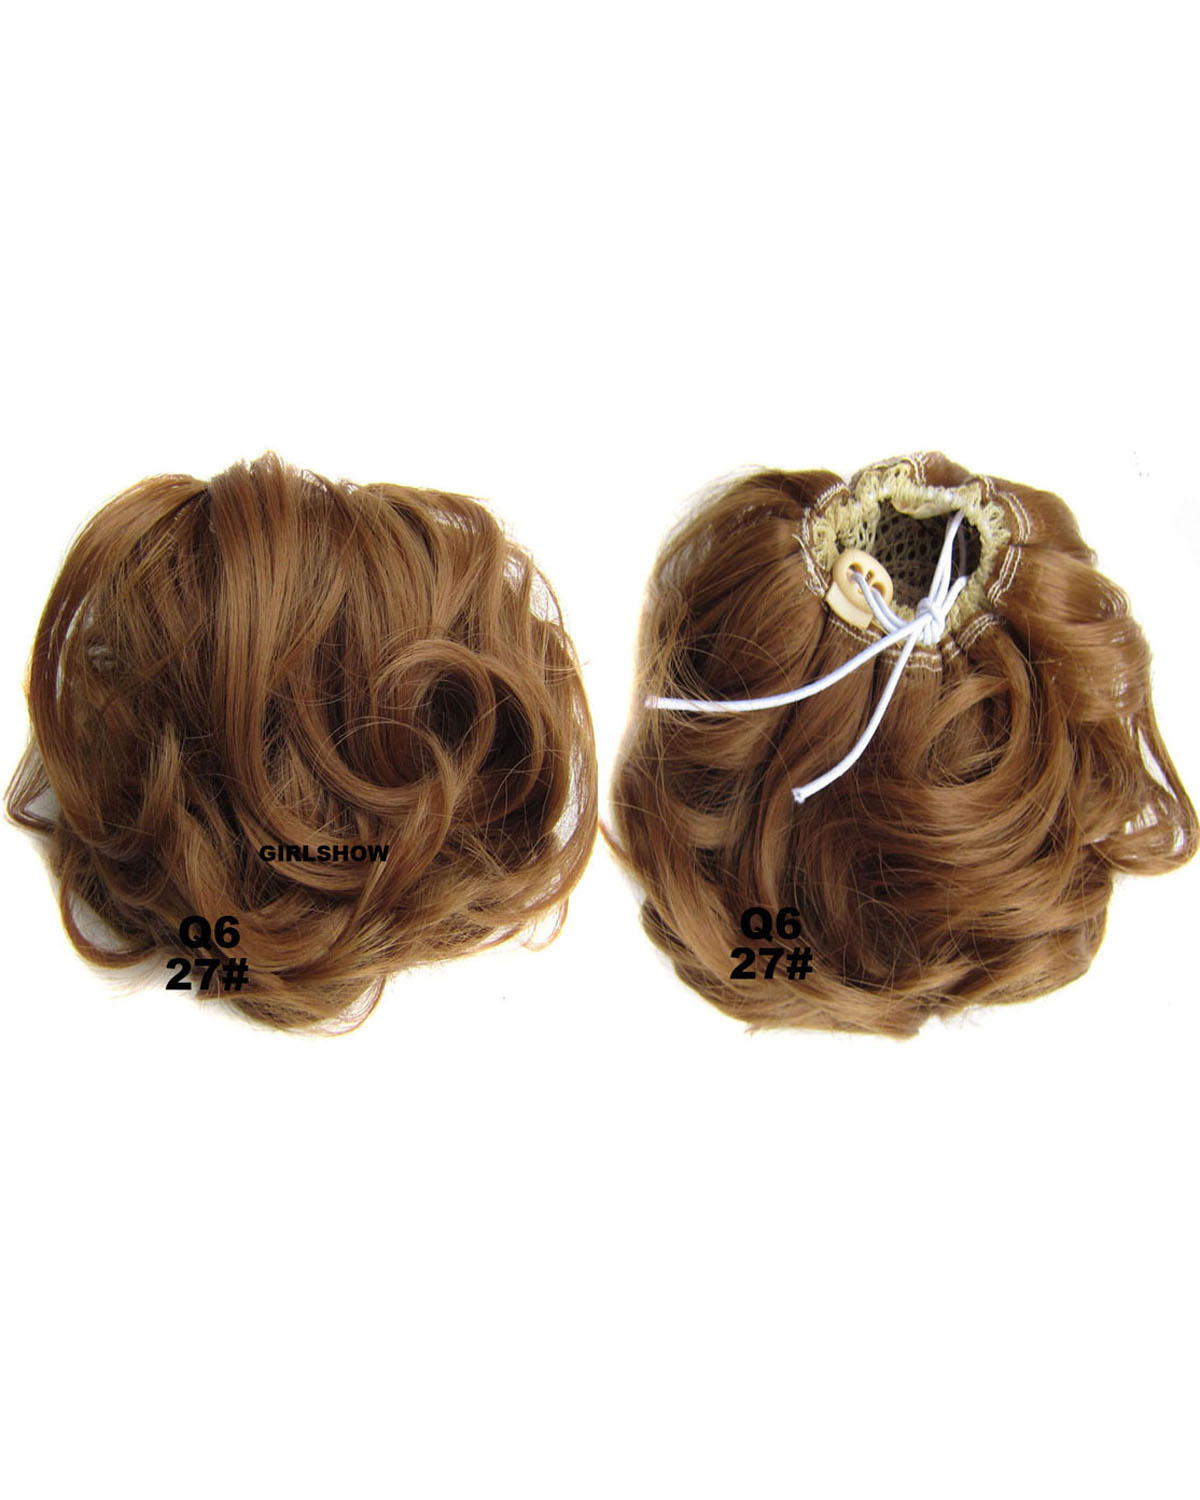 Ladies Elaborate Curly and Short Hair Buns Drawstring Synthetic Hair Extension Bride Scrunchies  27#